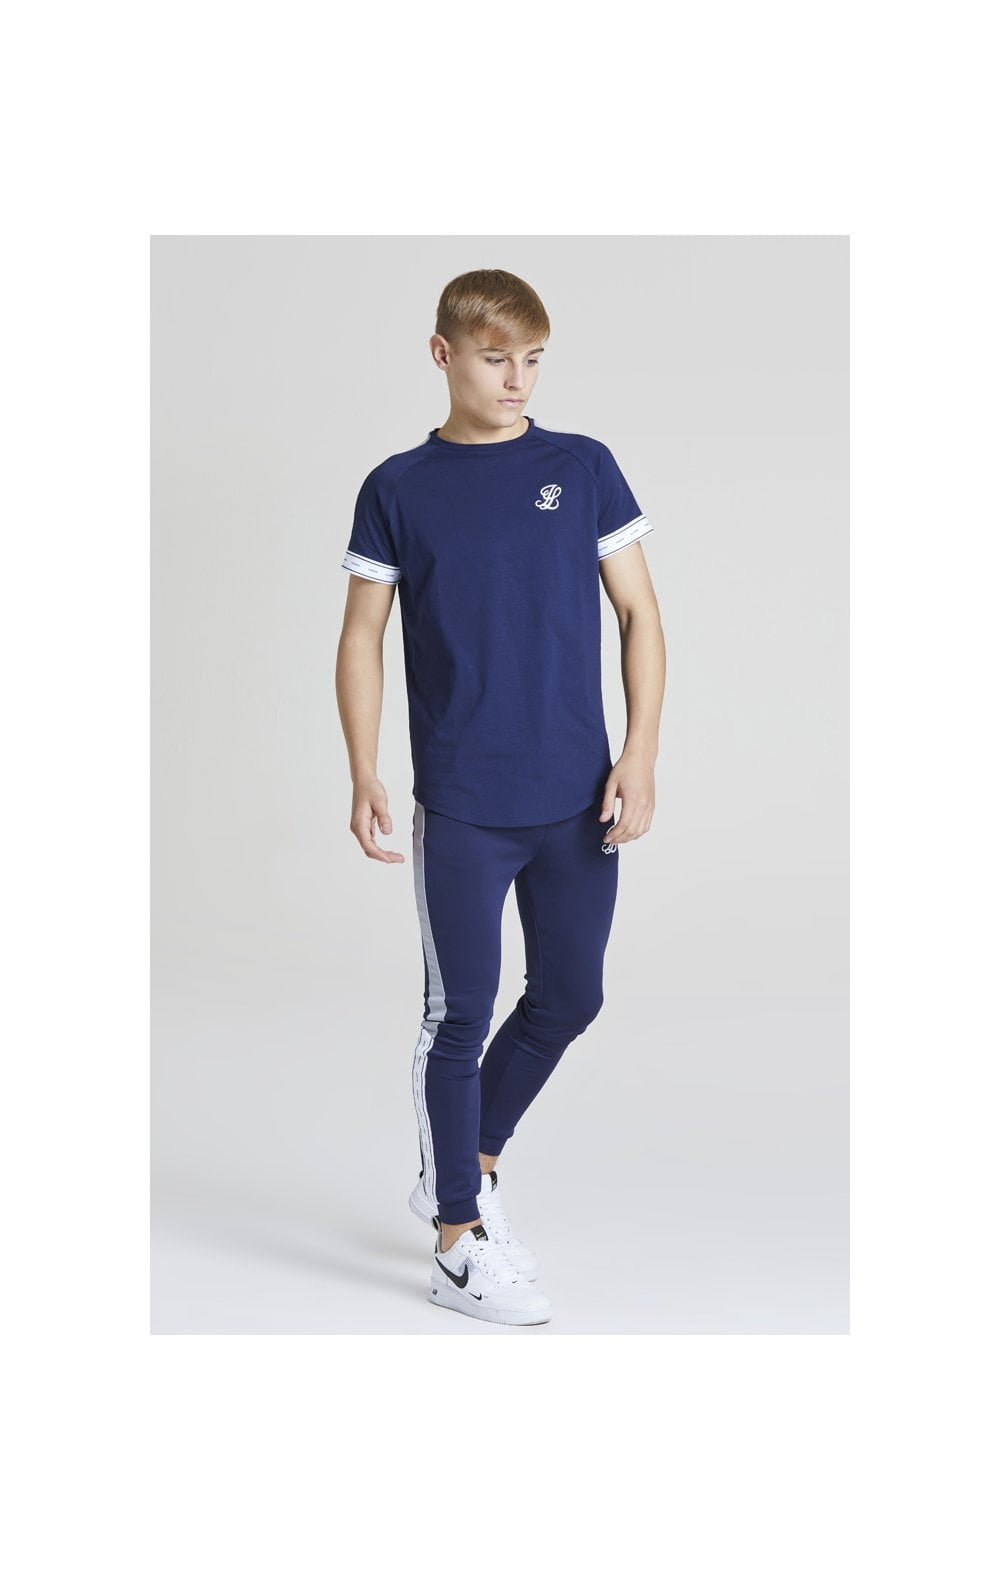 Illusive London Panel Tech Tee - Navy & Grey (3)